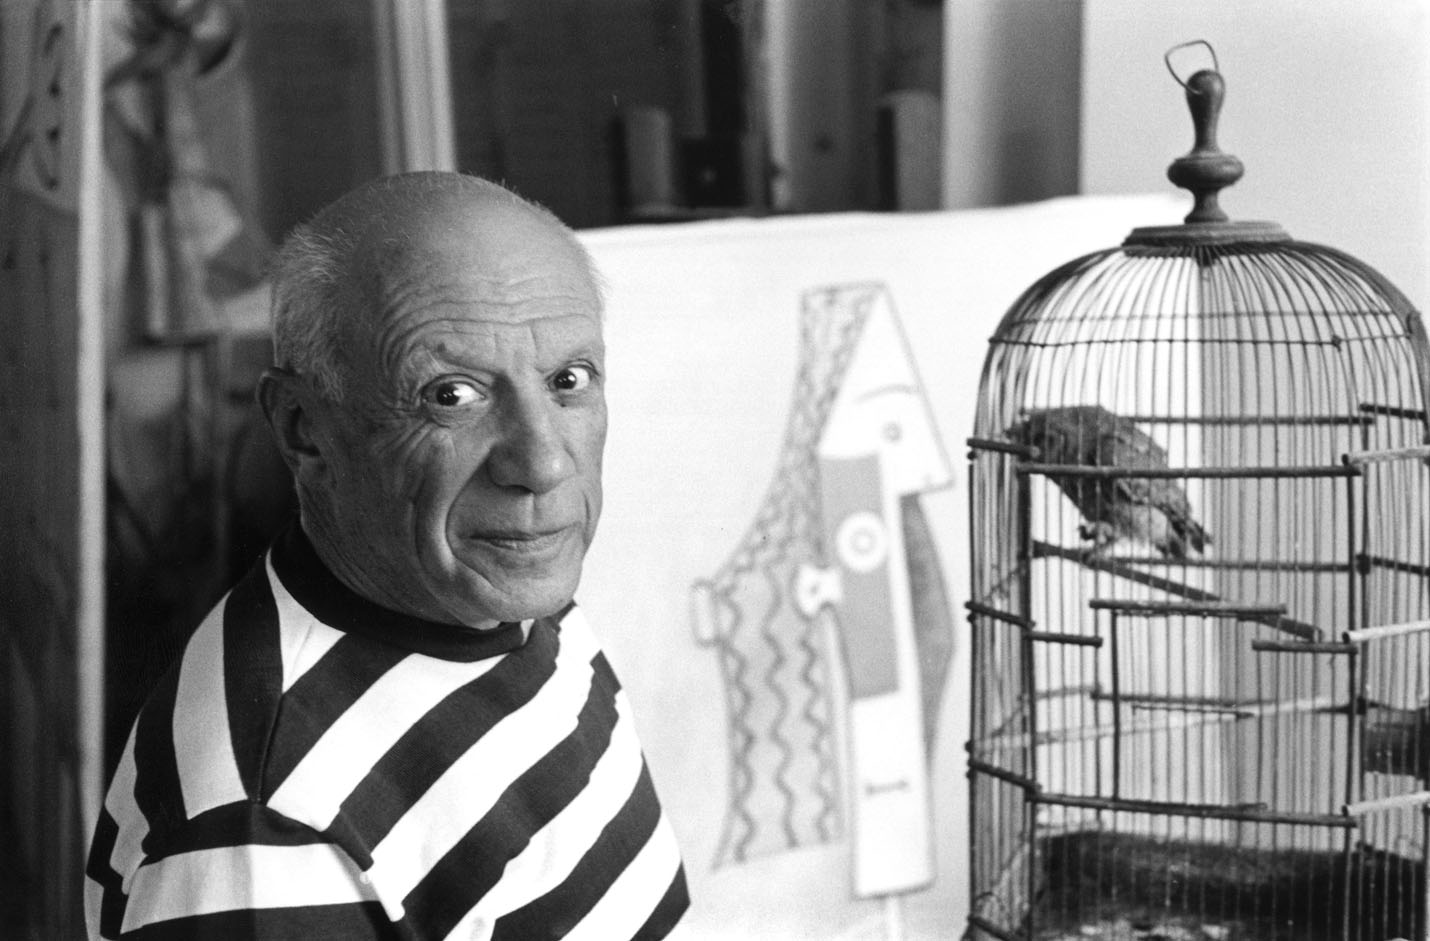 It may have been  1968 when  Picasso denounced computers, but his insight remains true.